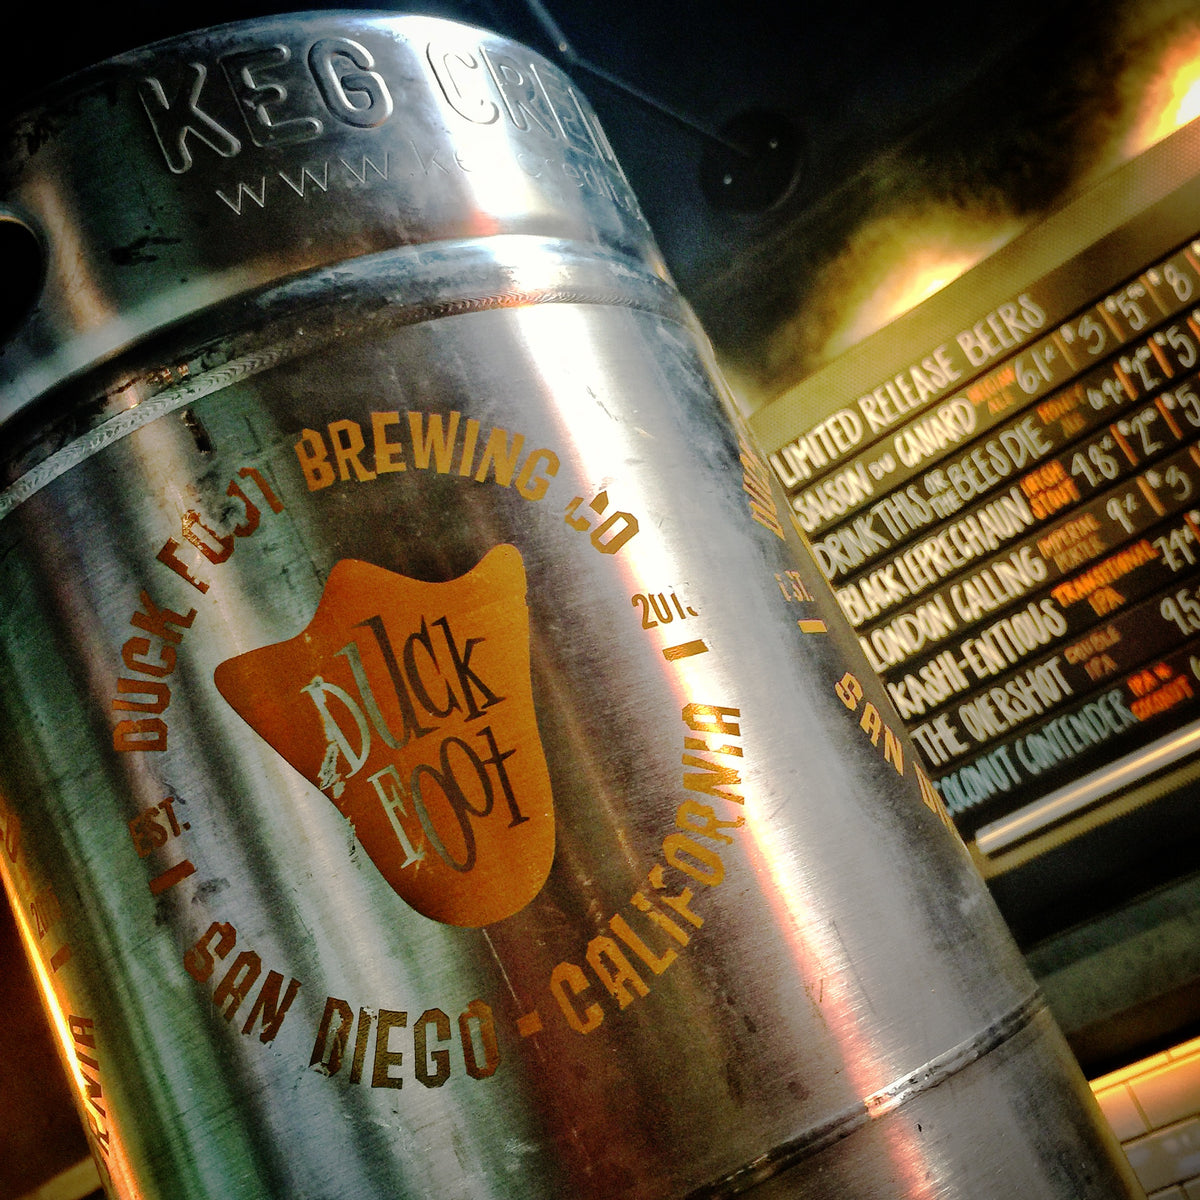 Hop'em Sock'em West Coast-style IPA, Keg (5 gal) - CALL 858-433-7916 TO RESERVE